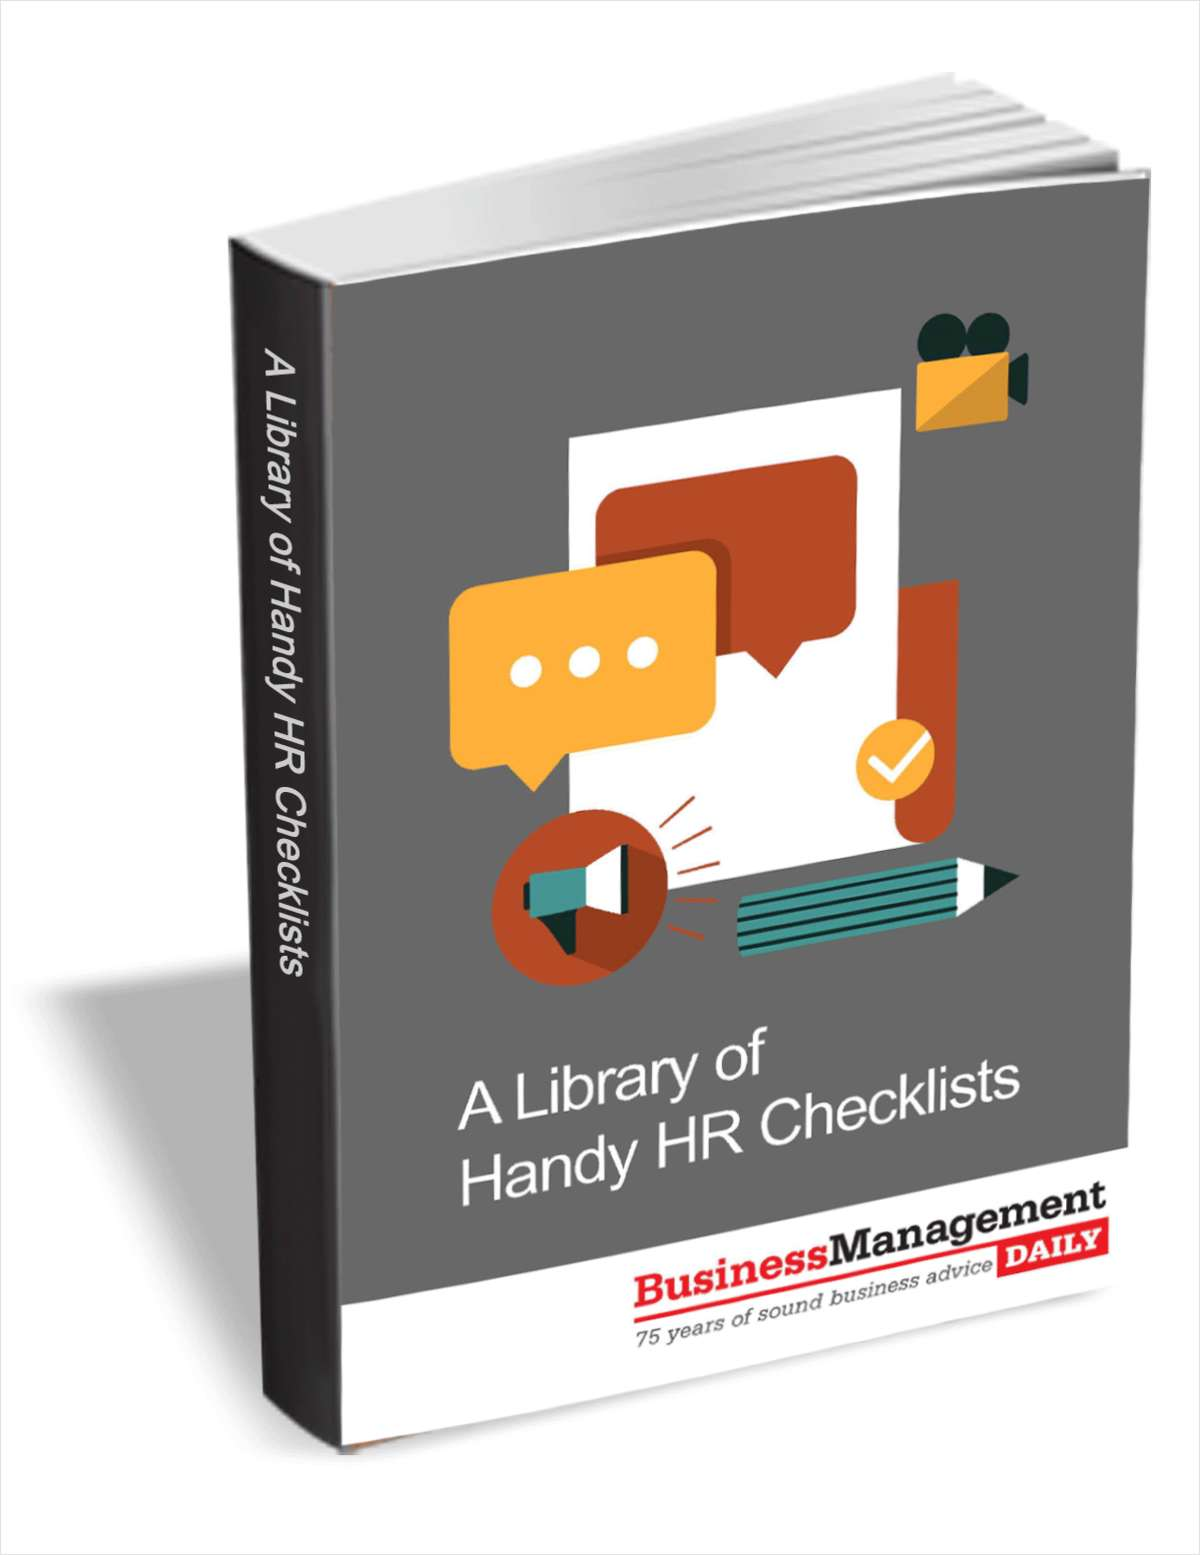 A Library of Handy HR Checklists